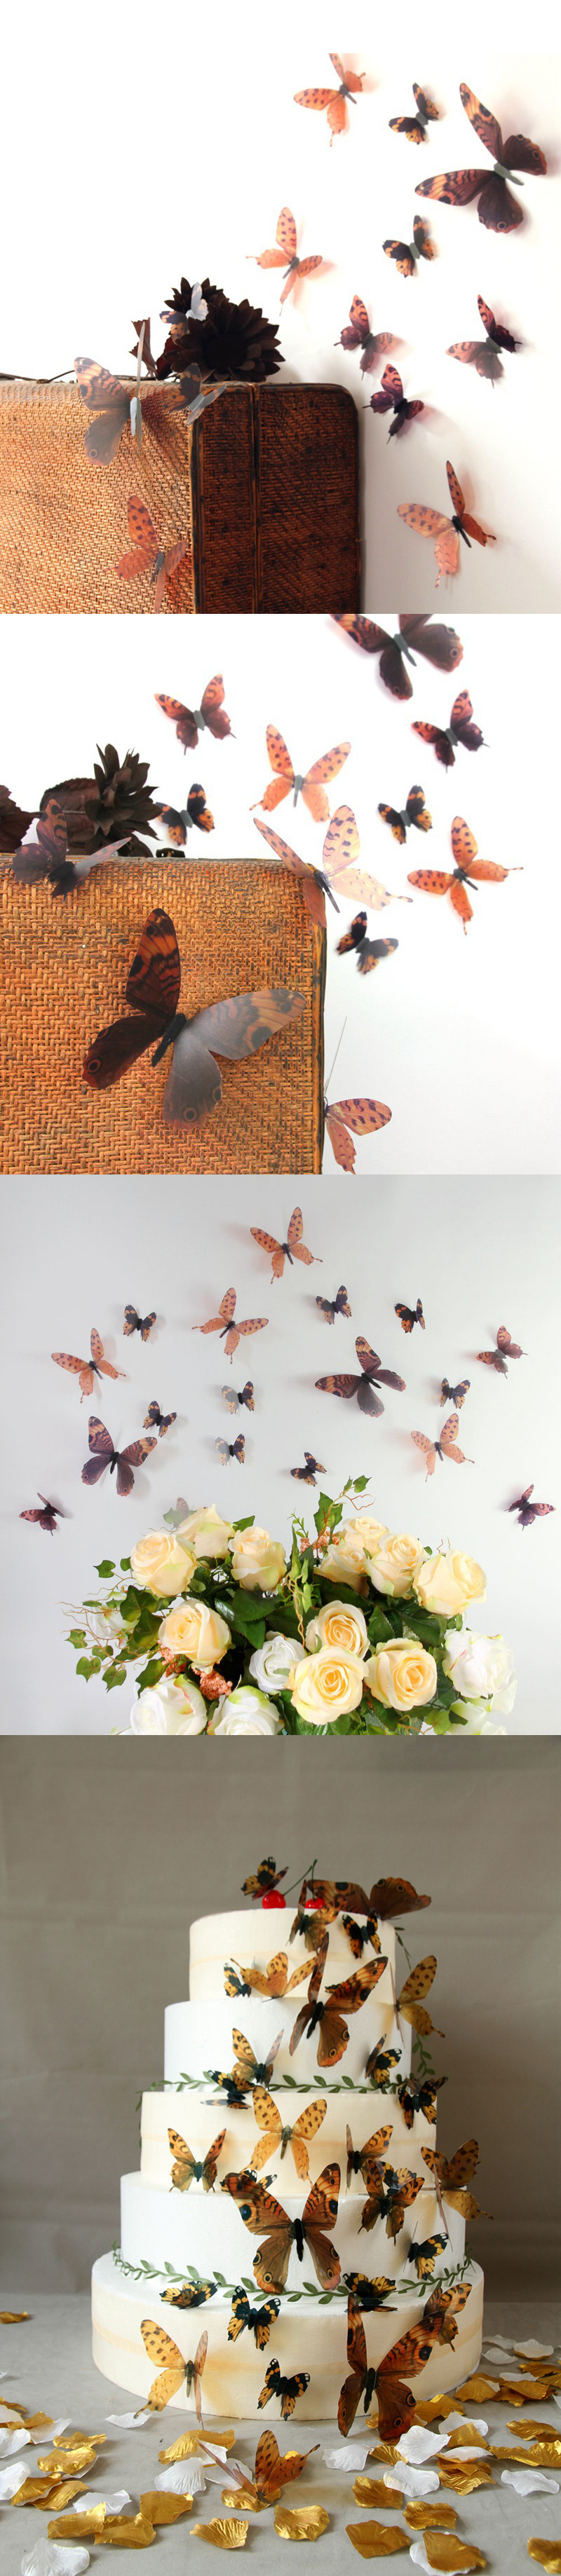 18Pcs 3D Transparent Butterfly Wall Stickers PVC European American Style Color Paste Decor